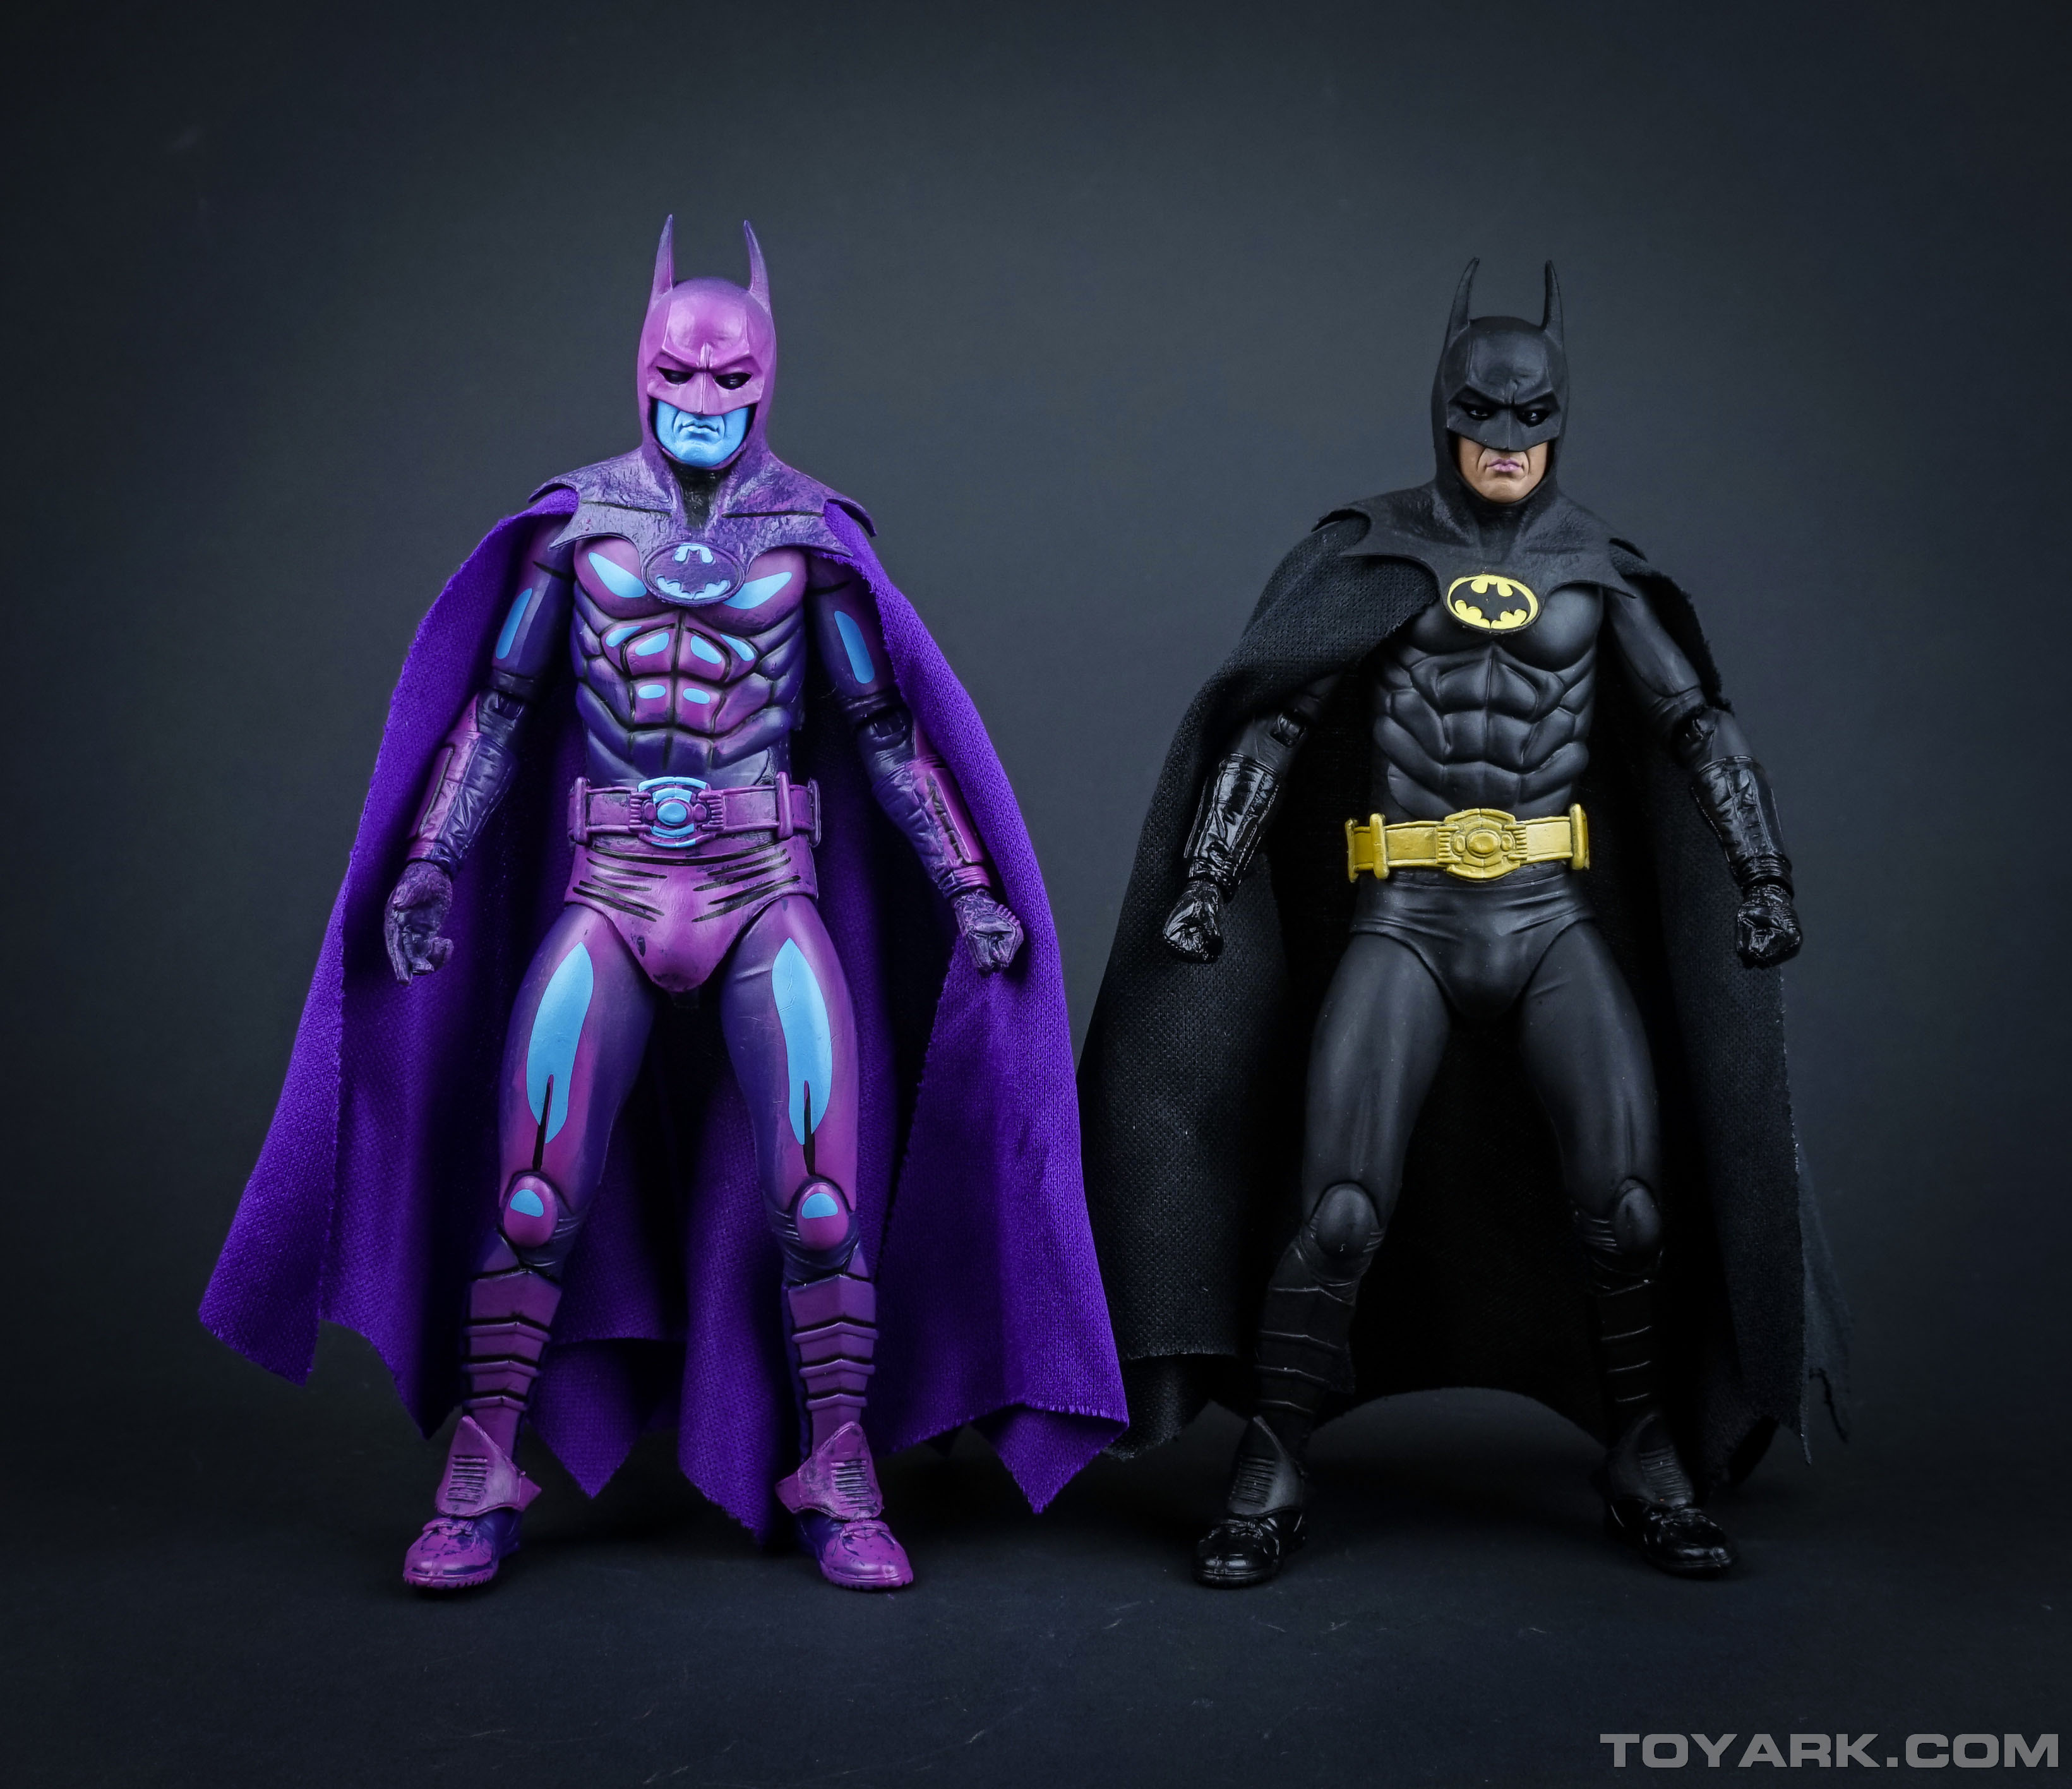 Batman and his video game counterpart.